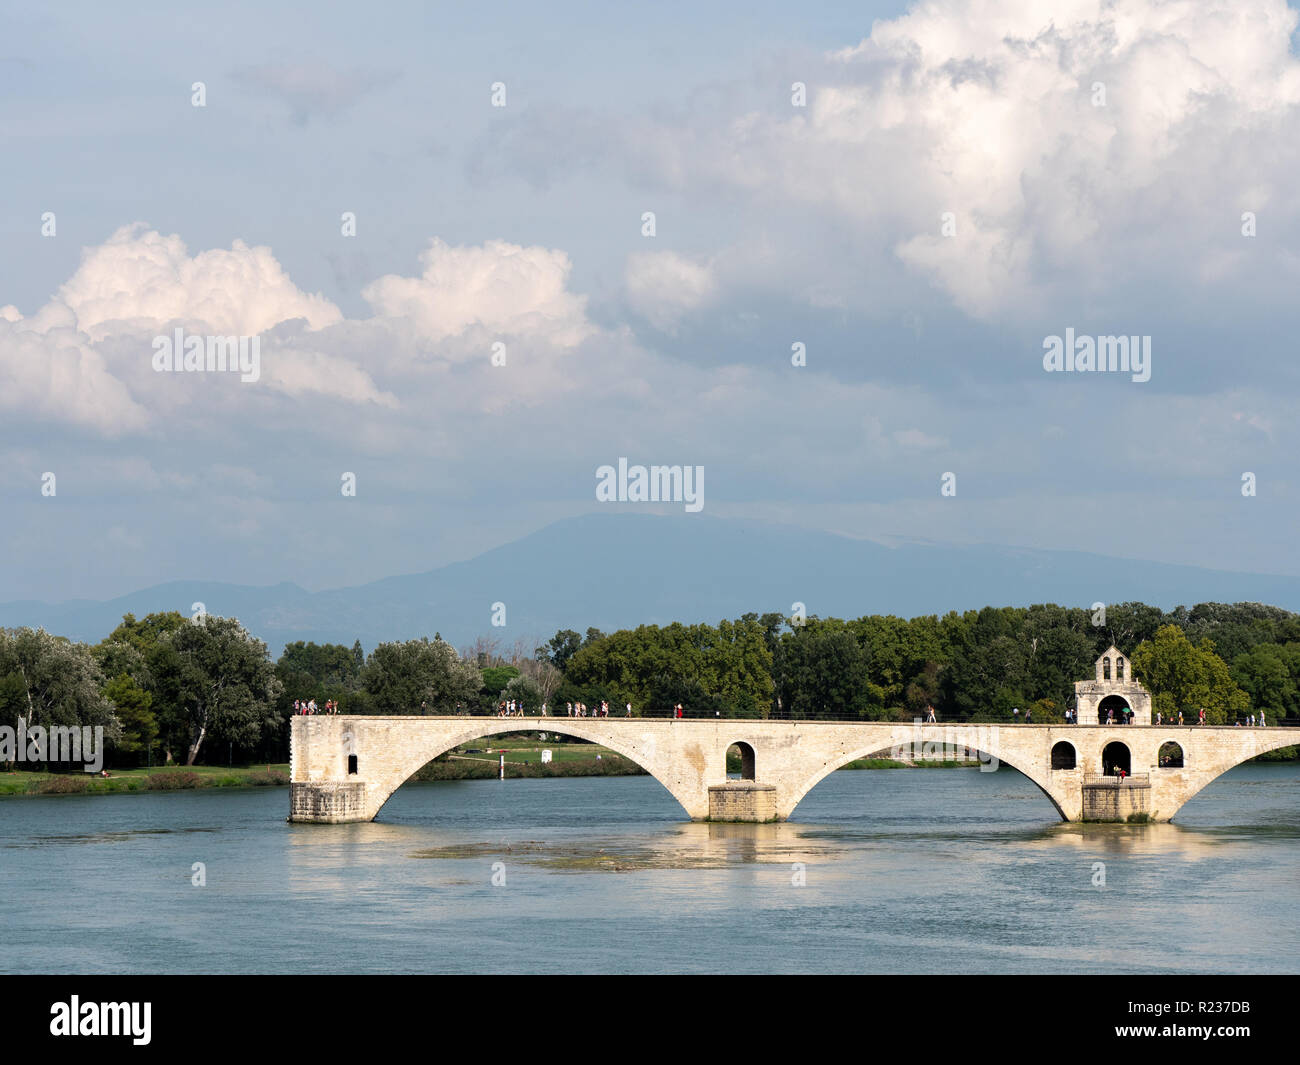 "View on the Rhone river in Avignon, southern France. The river is crossed by a famous medieval bridge called the ""Pont d'Avignon"" or ""Pont Saint-Bénéz Stock Photo"